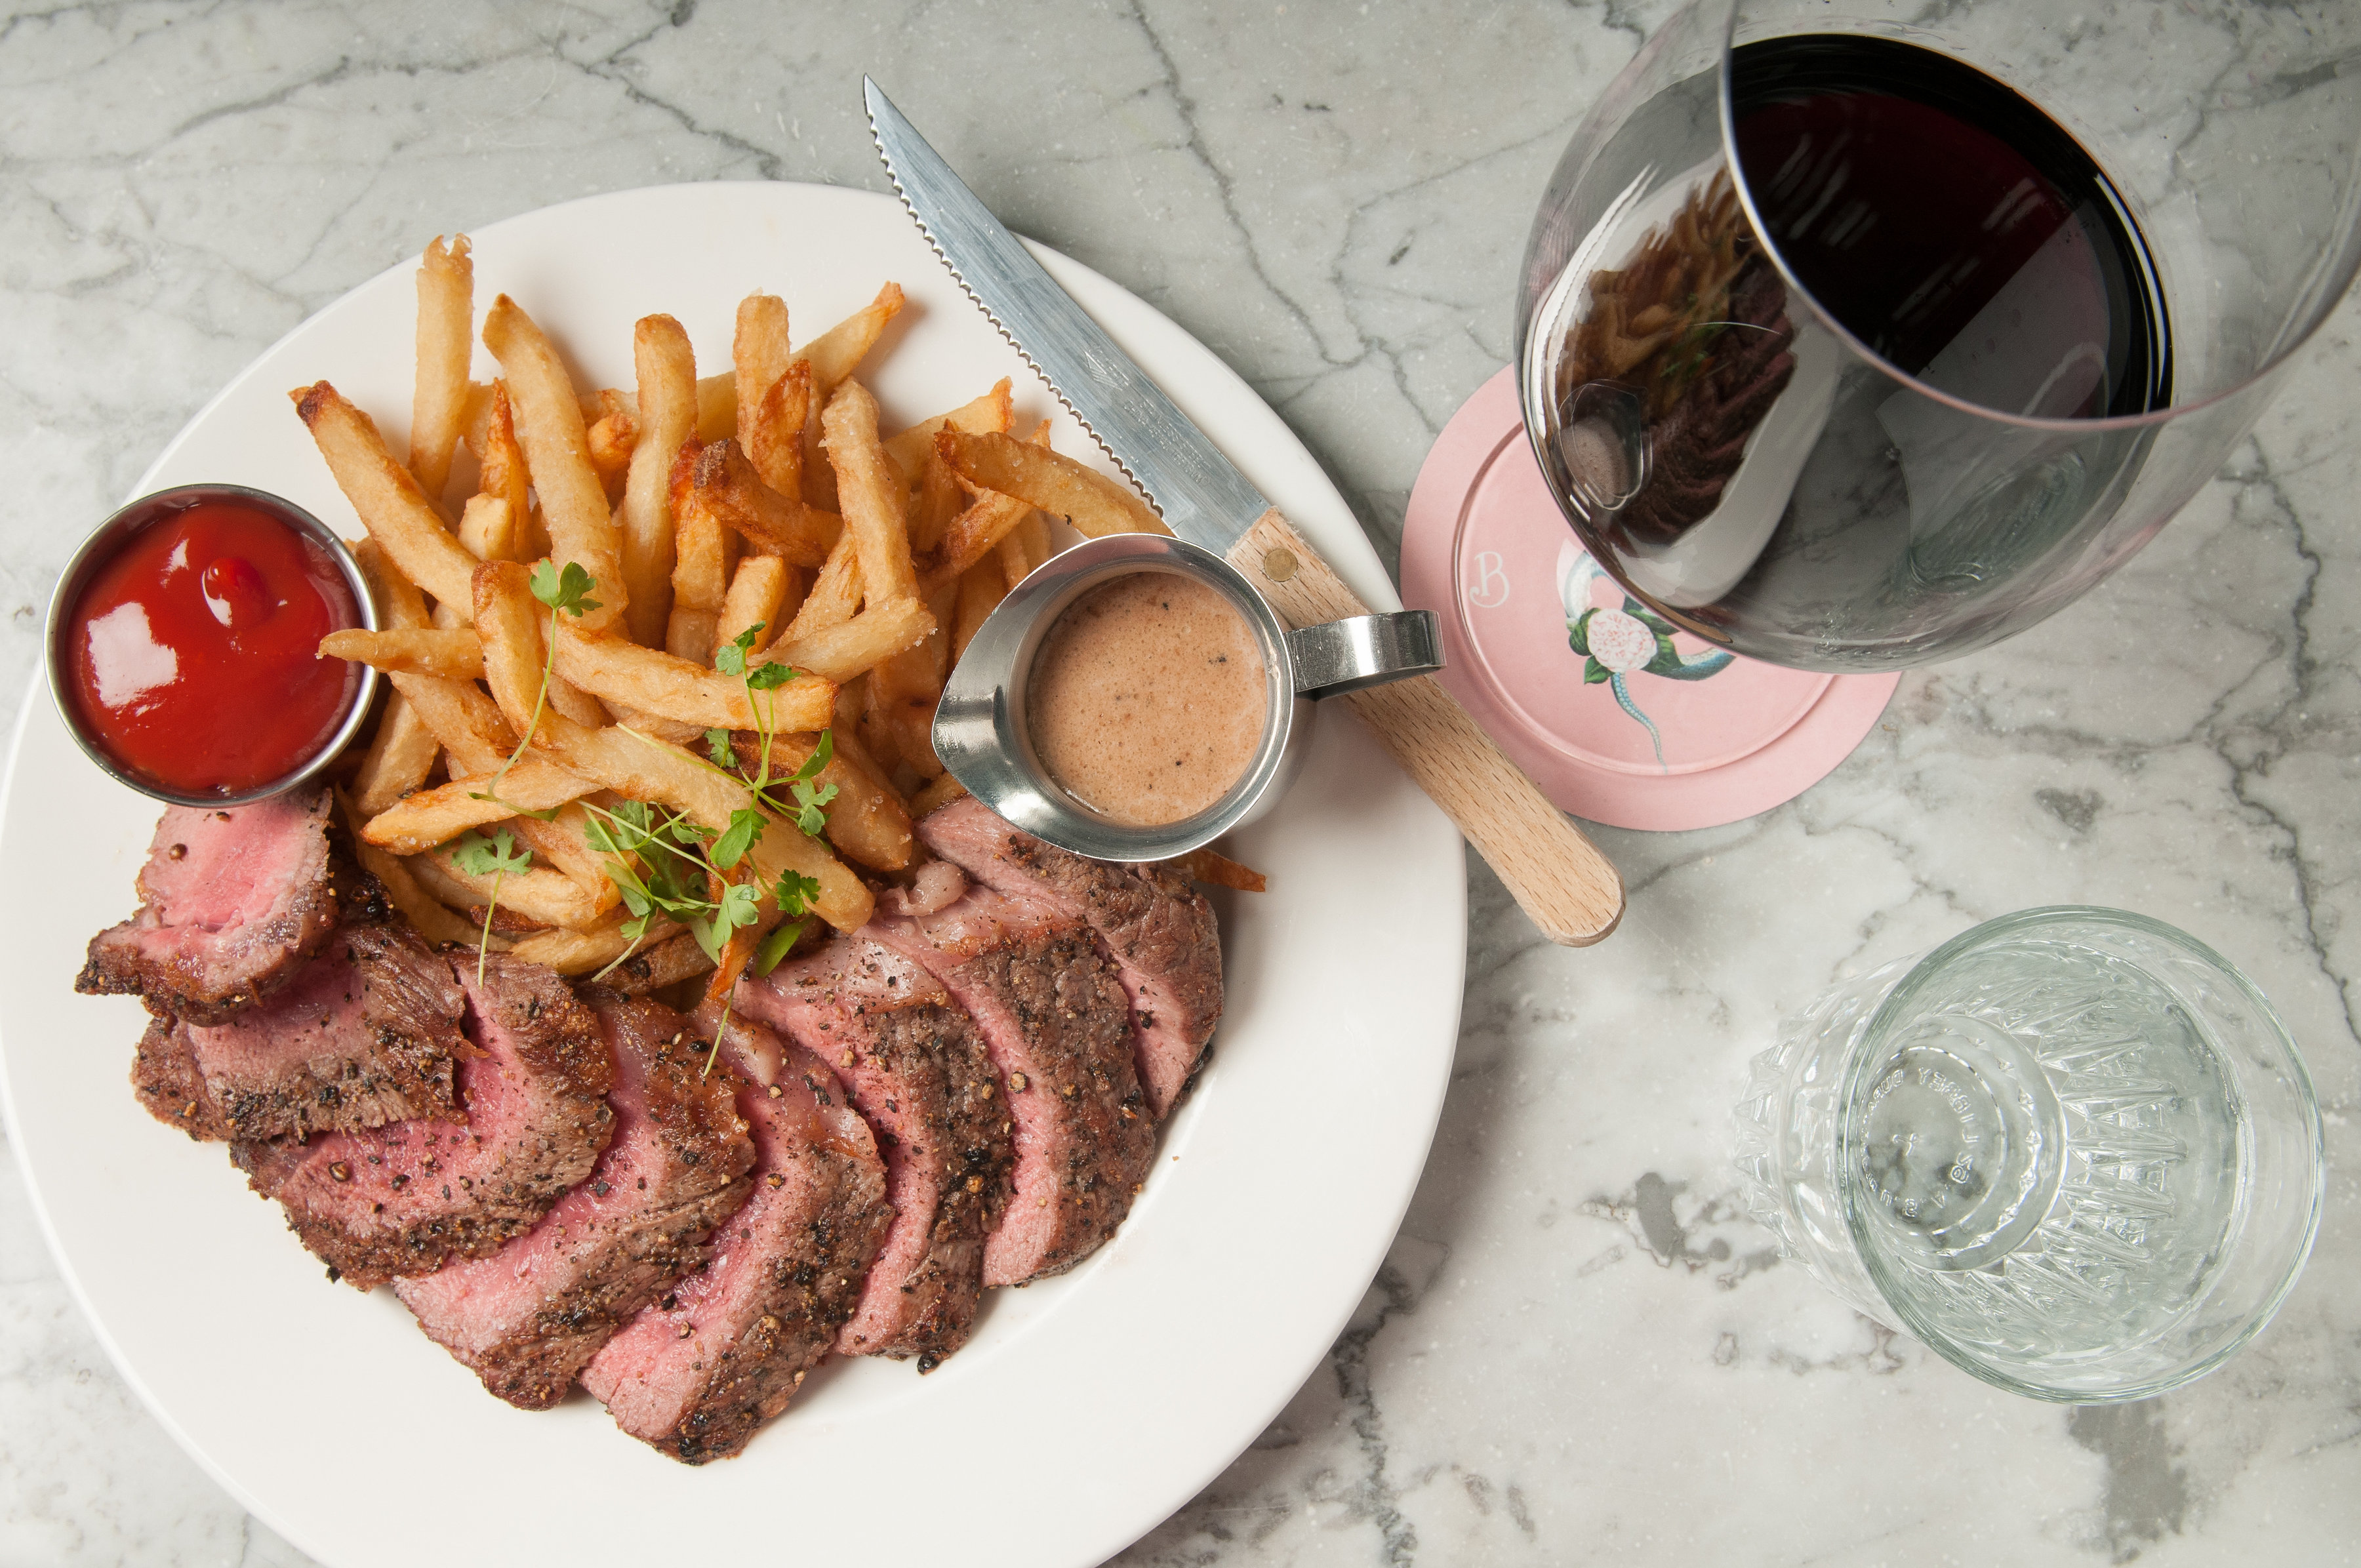 Steak Frites with Peppercorn Sauce